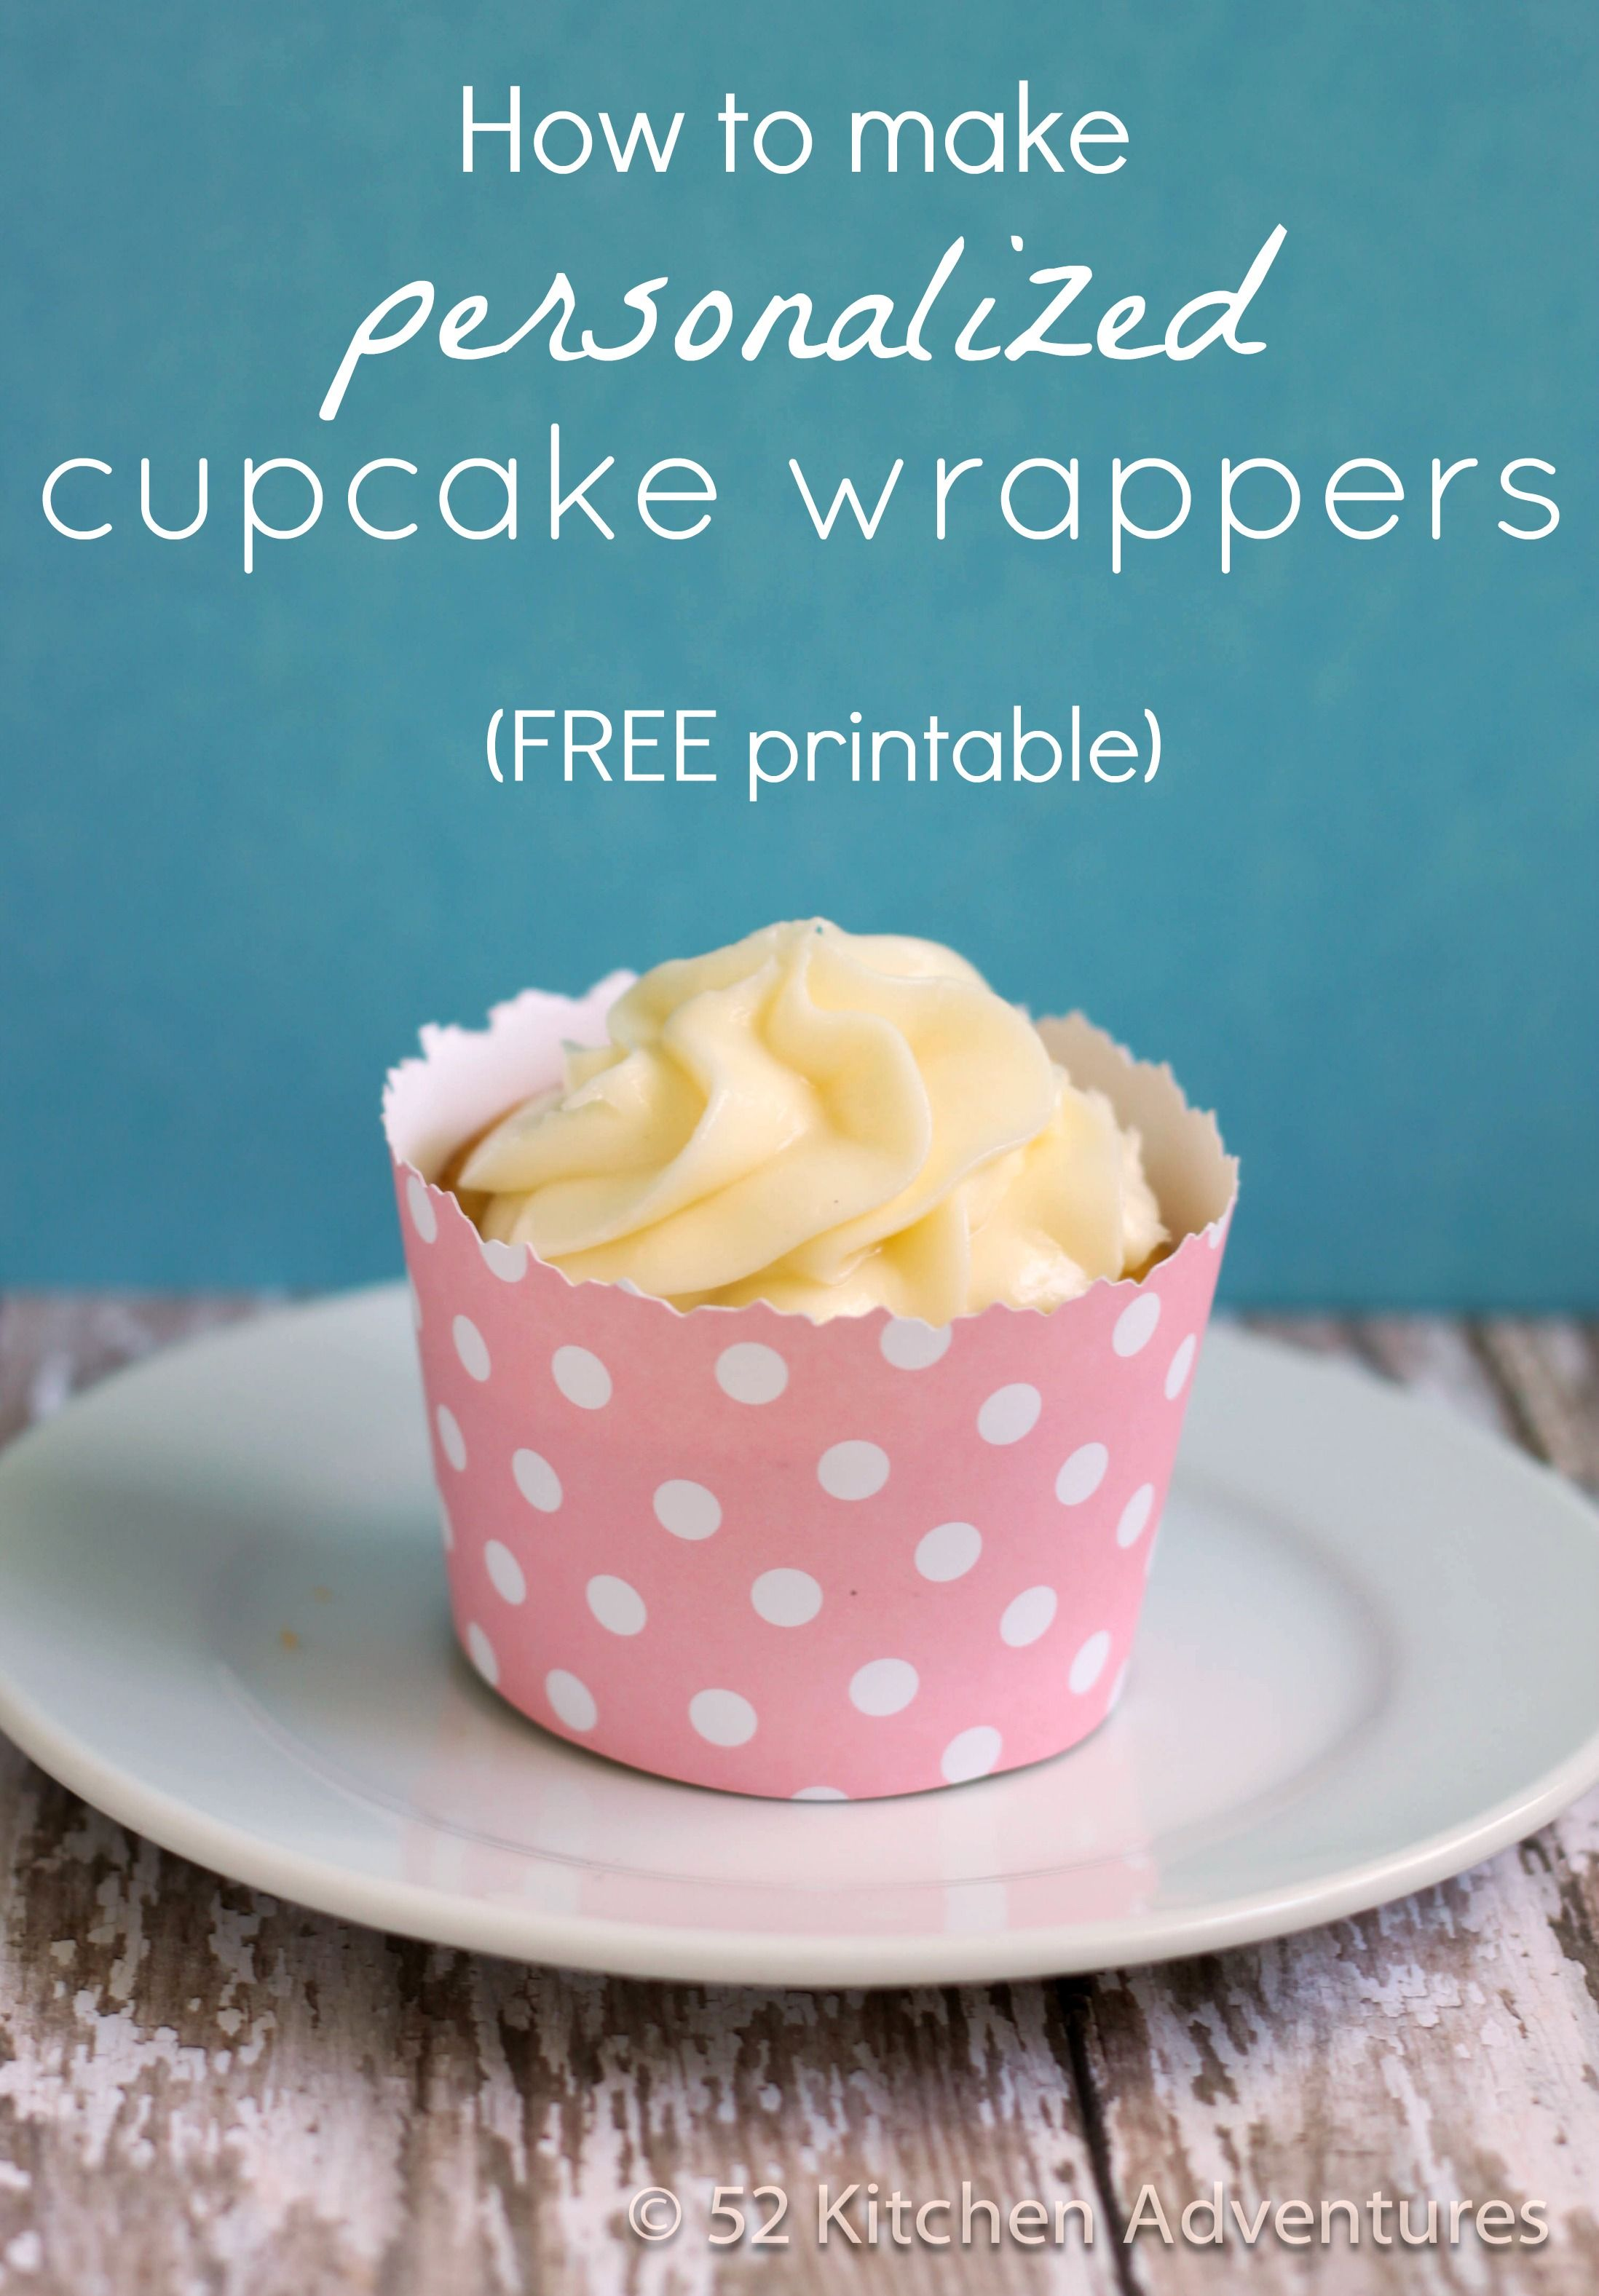 How to make personalized cupcake wrappers   Pinterest   Cupcake ...